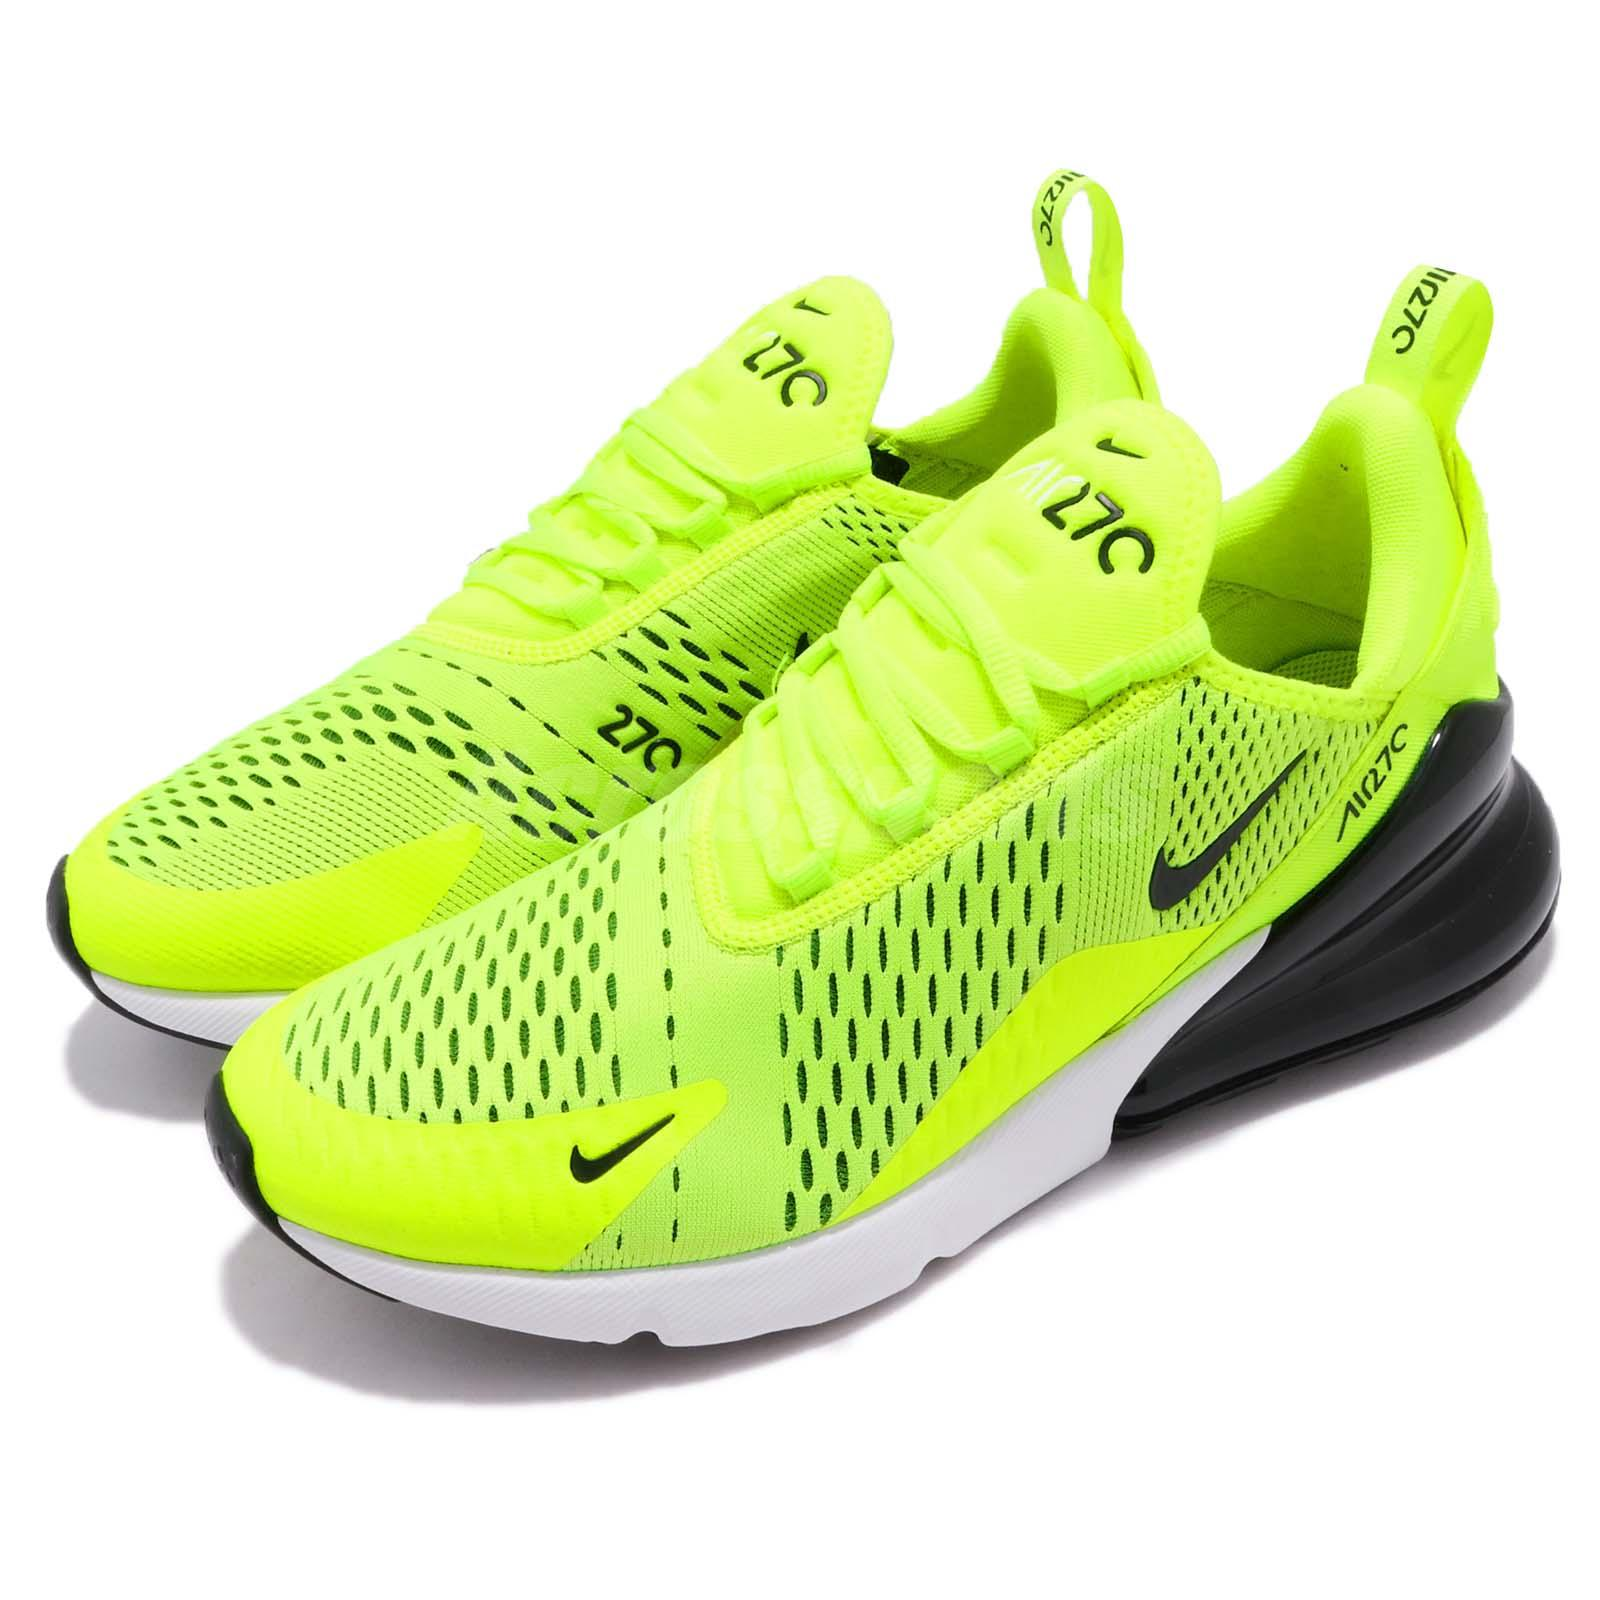 0f088d8cdee Details about Nike Air Max 270 Volt Black White Men Running Casual Shoes  Sneakers AH8050-701